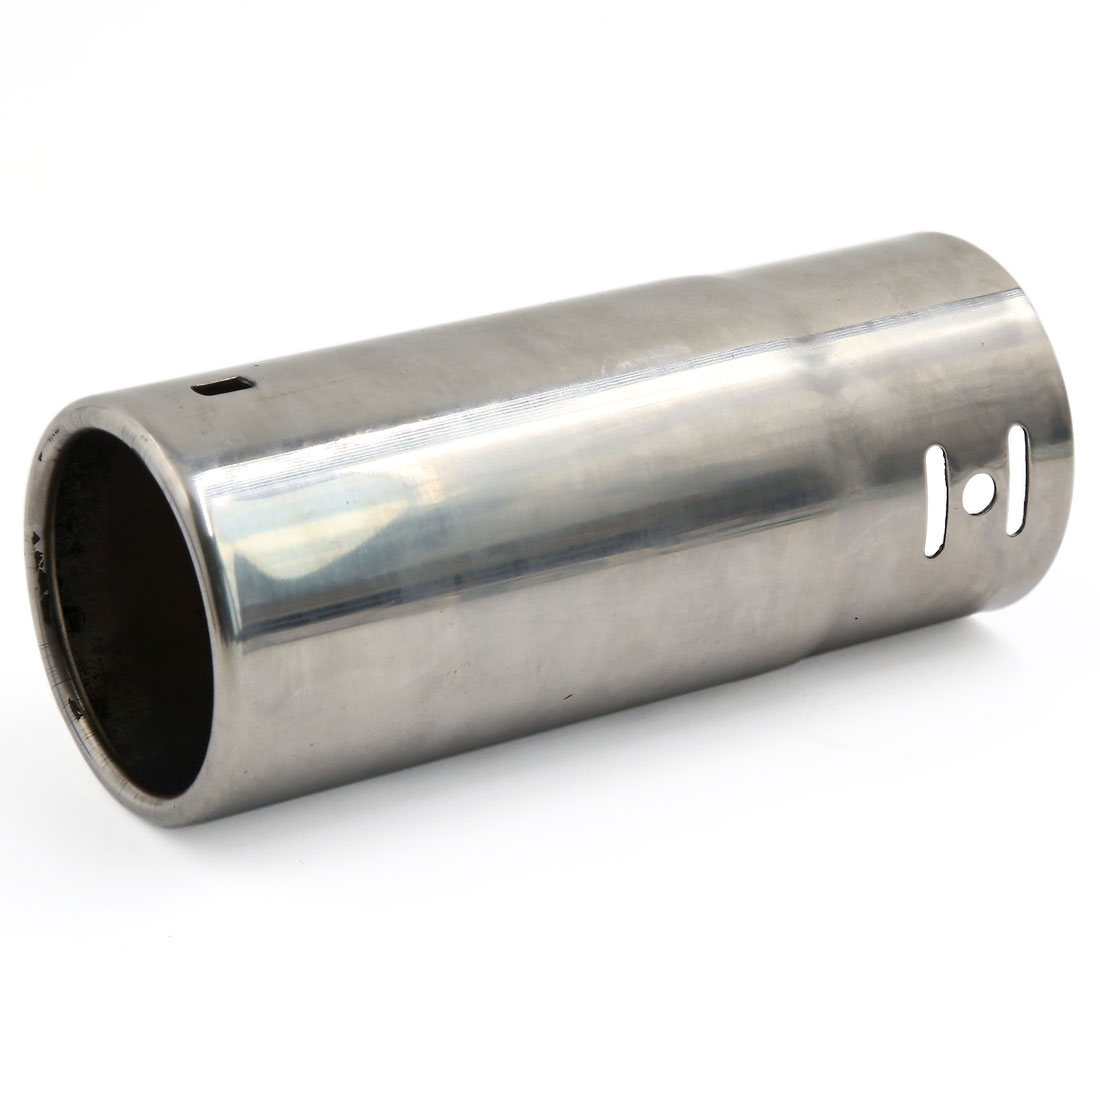 "Silver Tone 2.4"" Inlet Dia 15cm Long Outlet Exhaust Muffler Tail Pipe Tip"